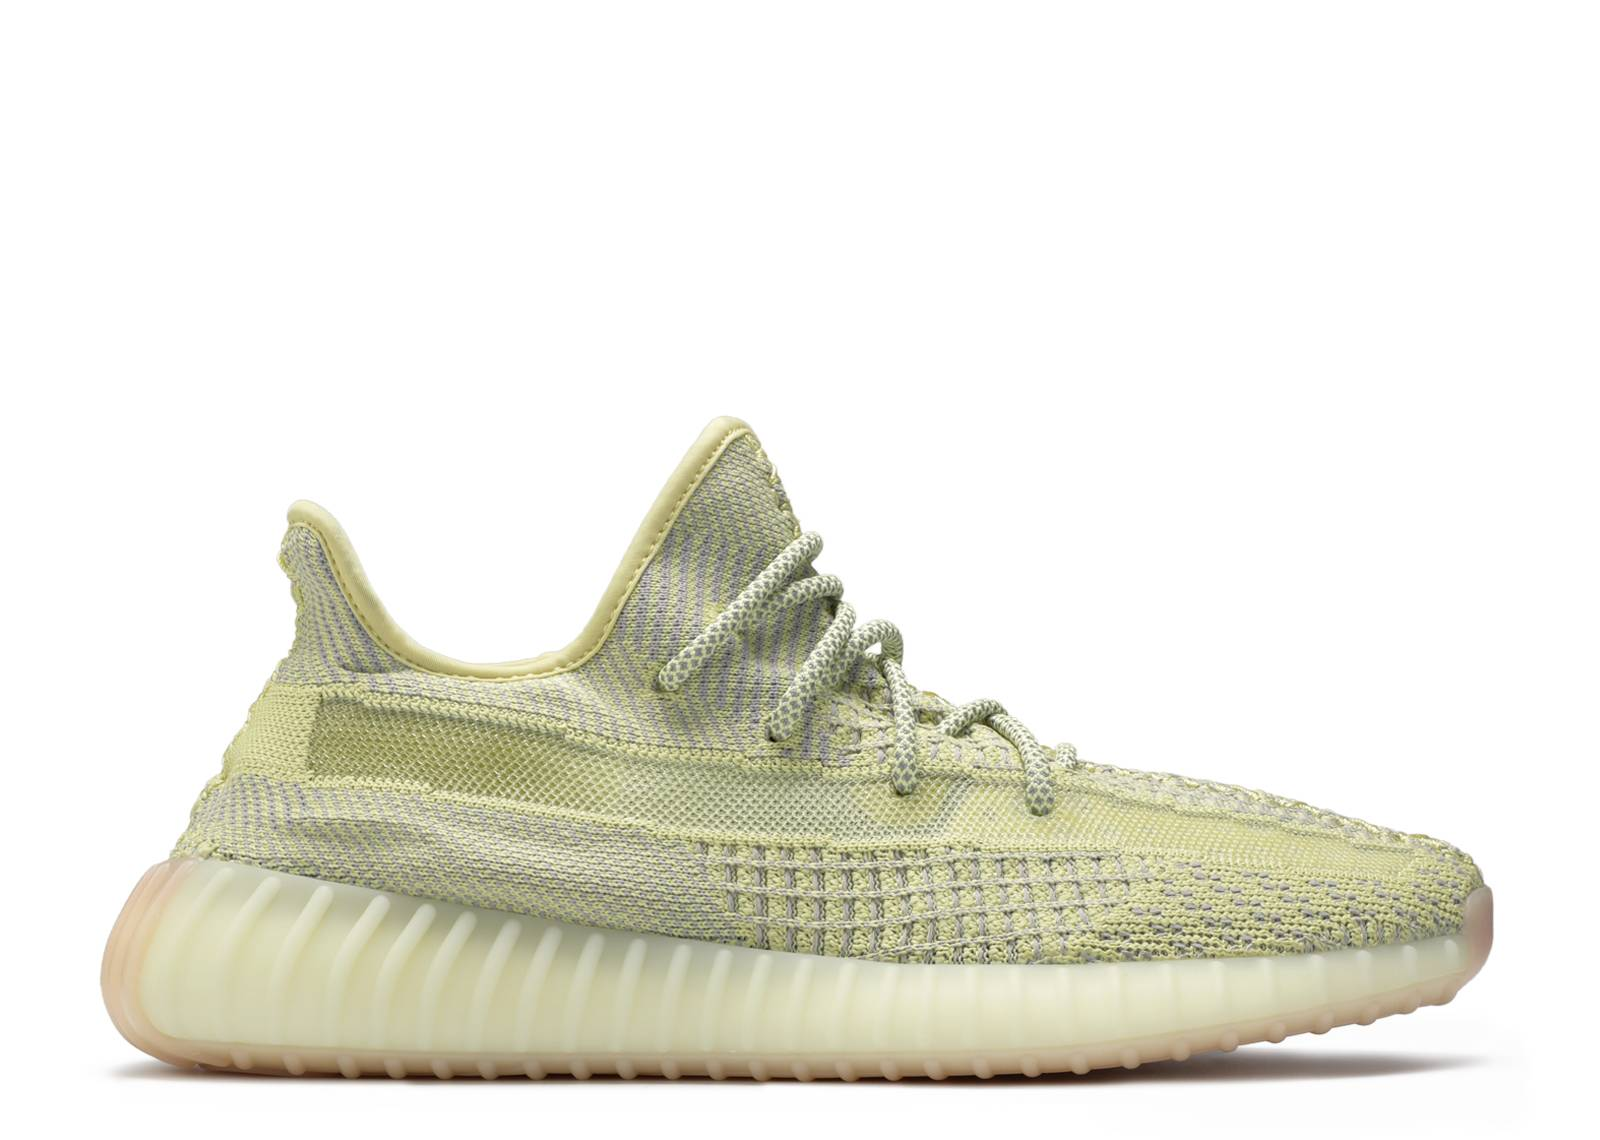 adidas Yeezy Boost 350 V2 Antlia Release Information